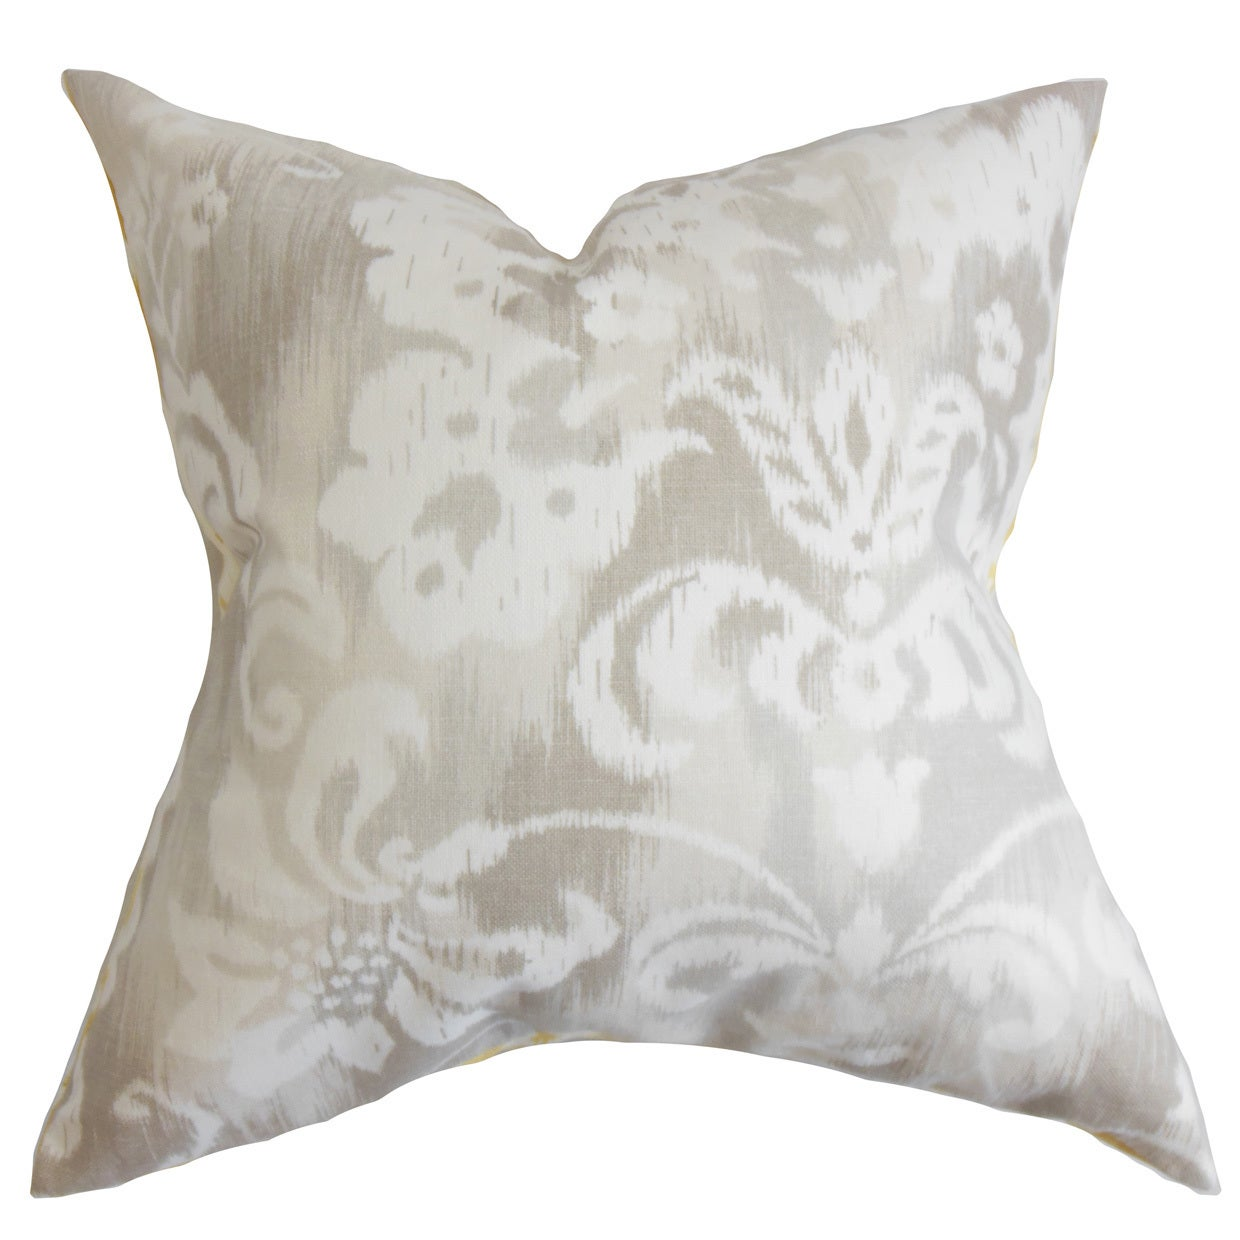 Shop ashira floral 24 inch down feather throw pillow neutral free shipping today overstock com 15284734